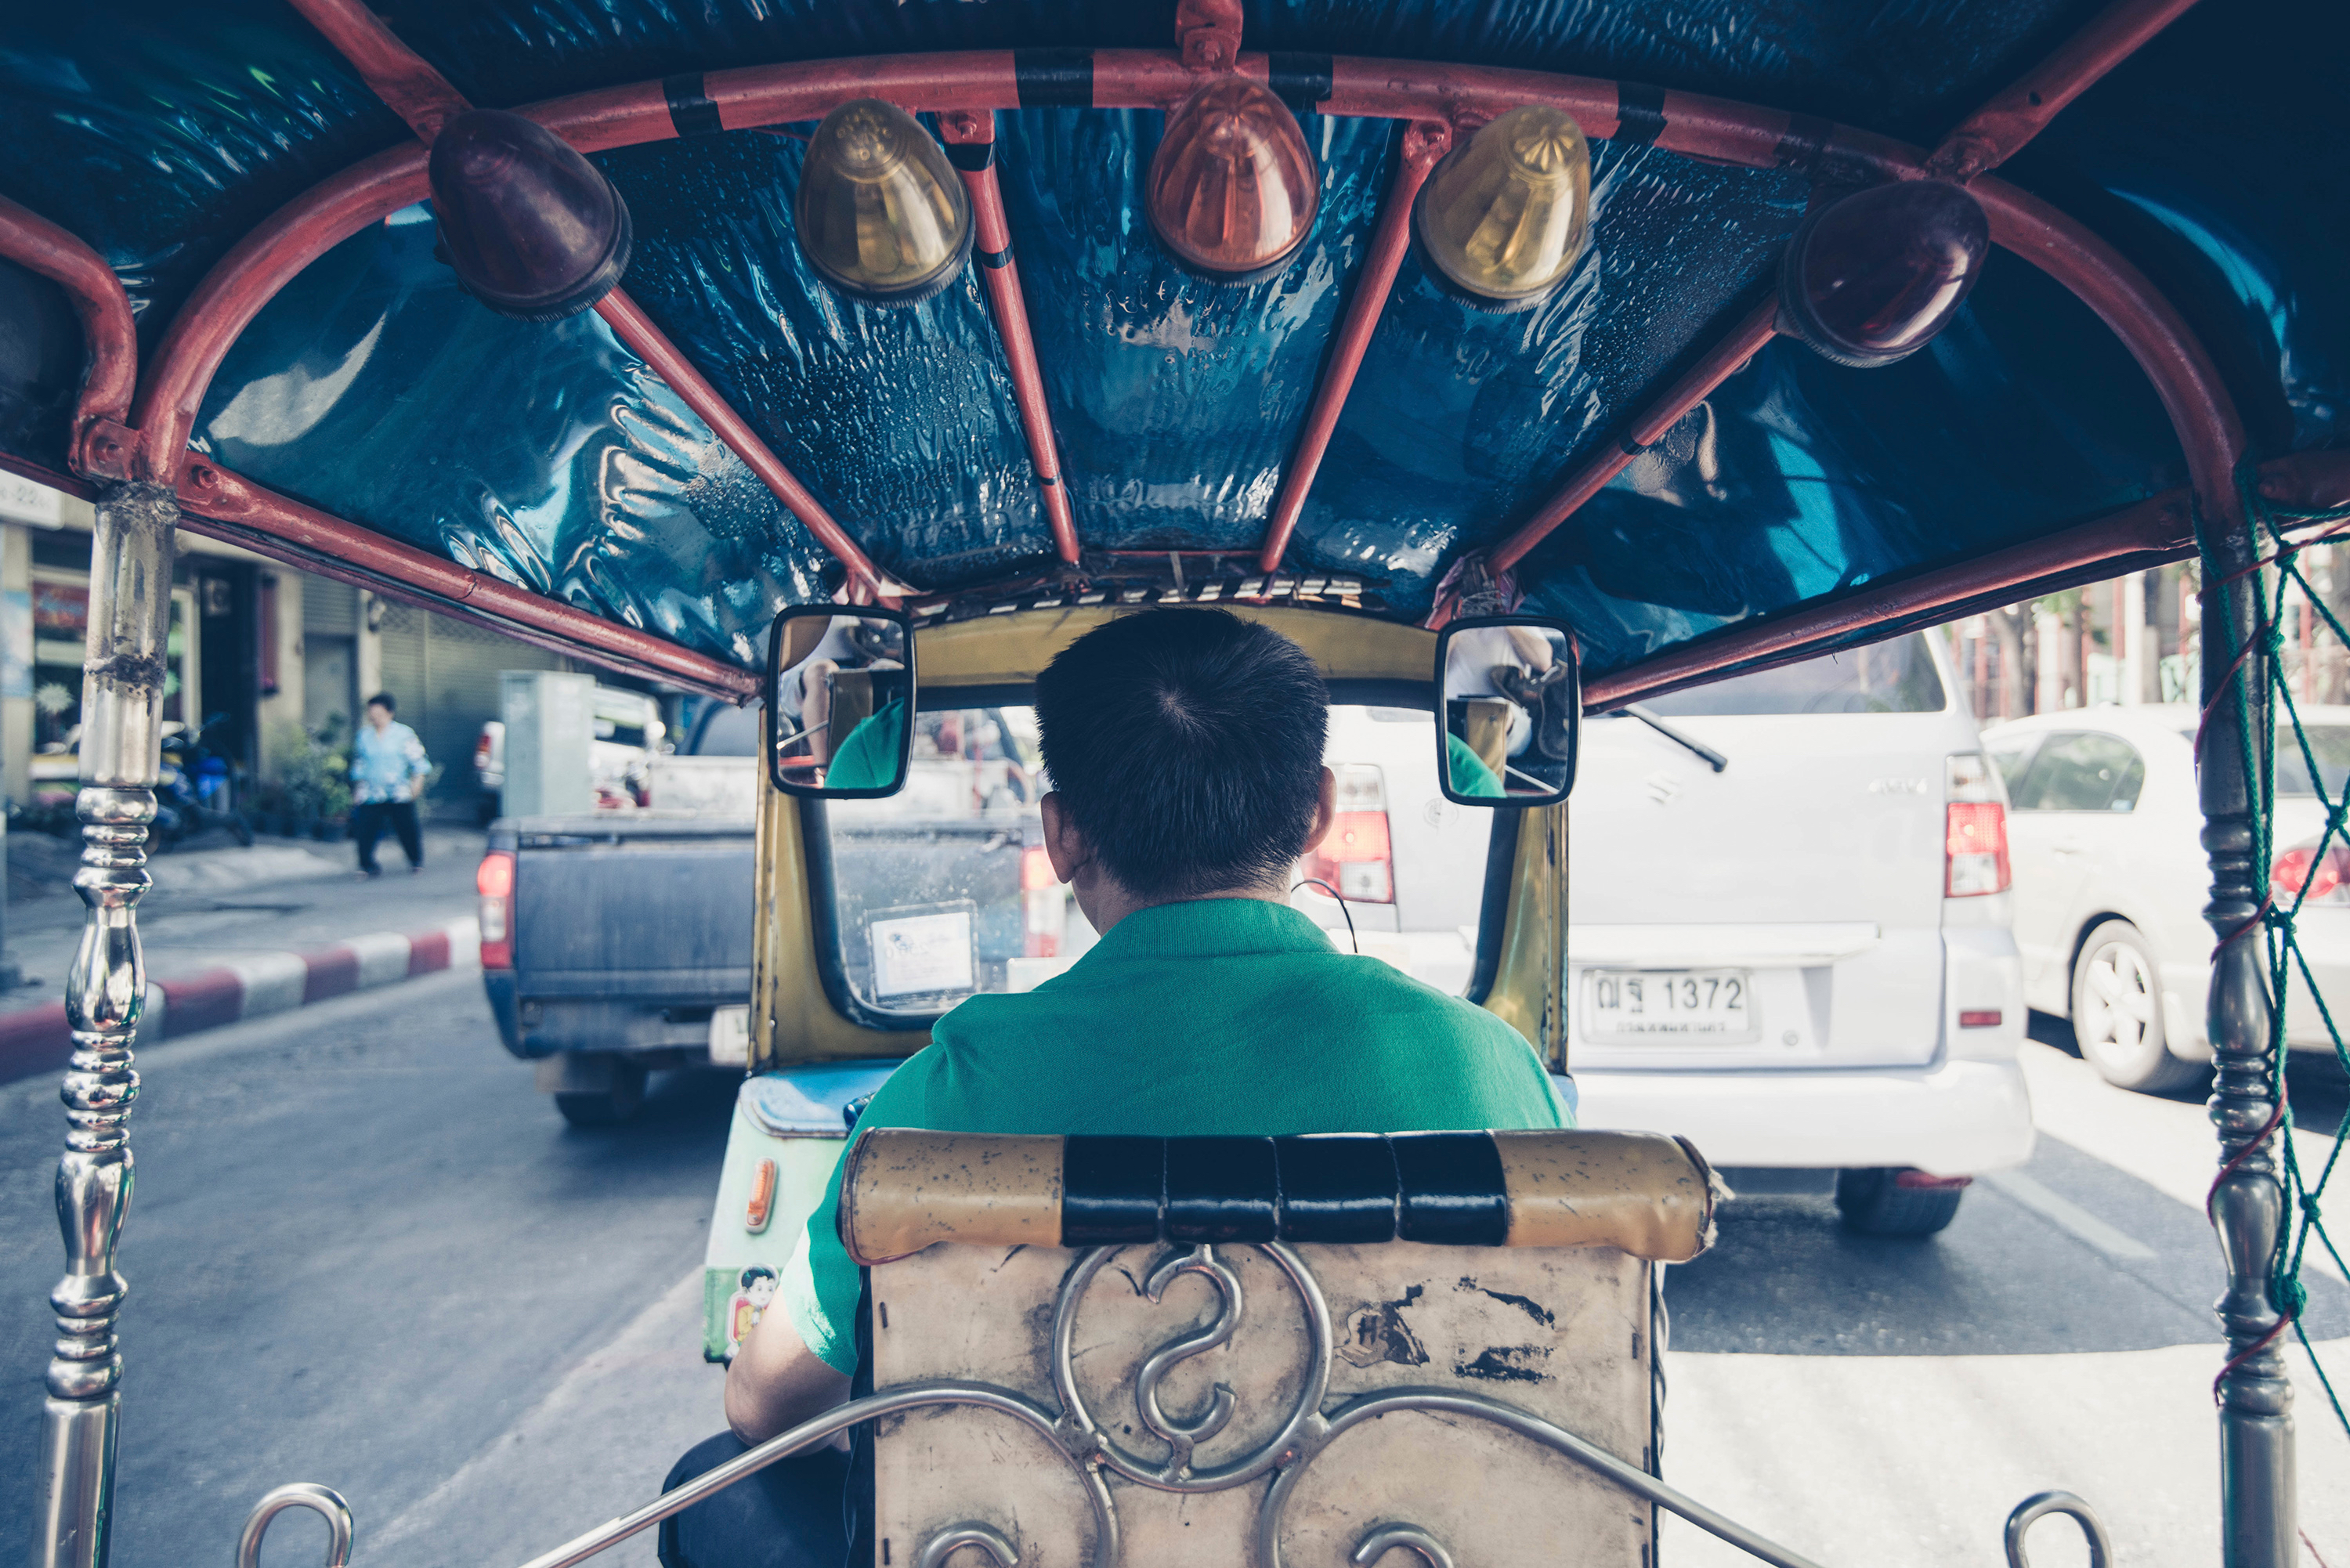 Philippine taxi driver shares Gospel media on SD cards